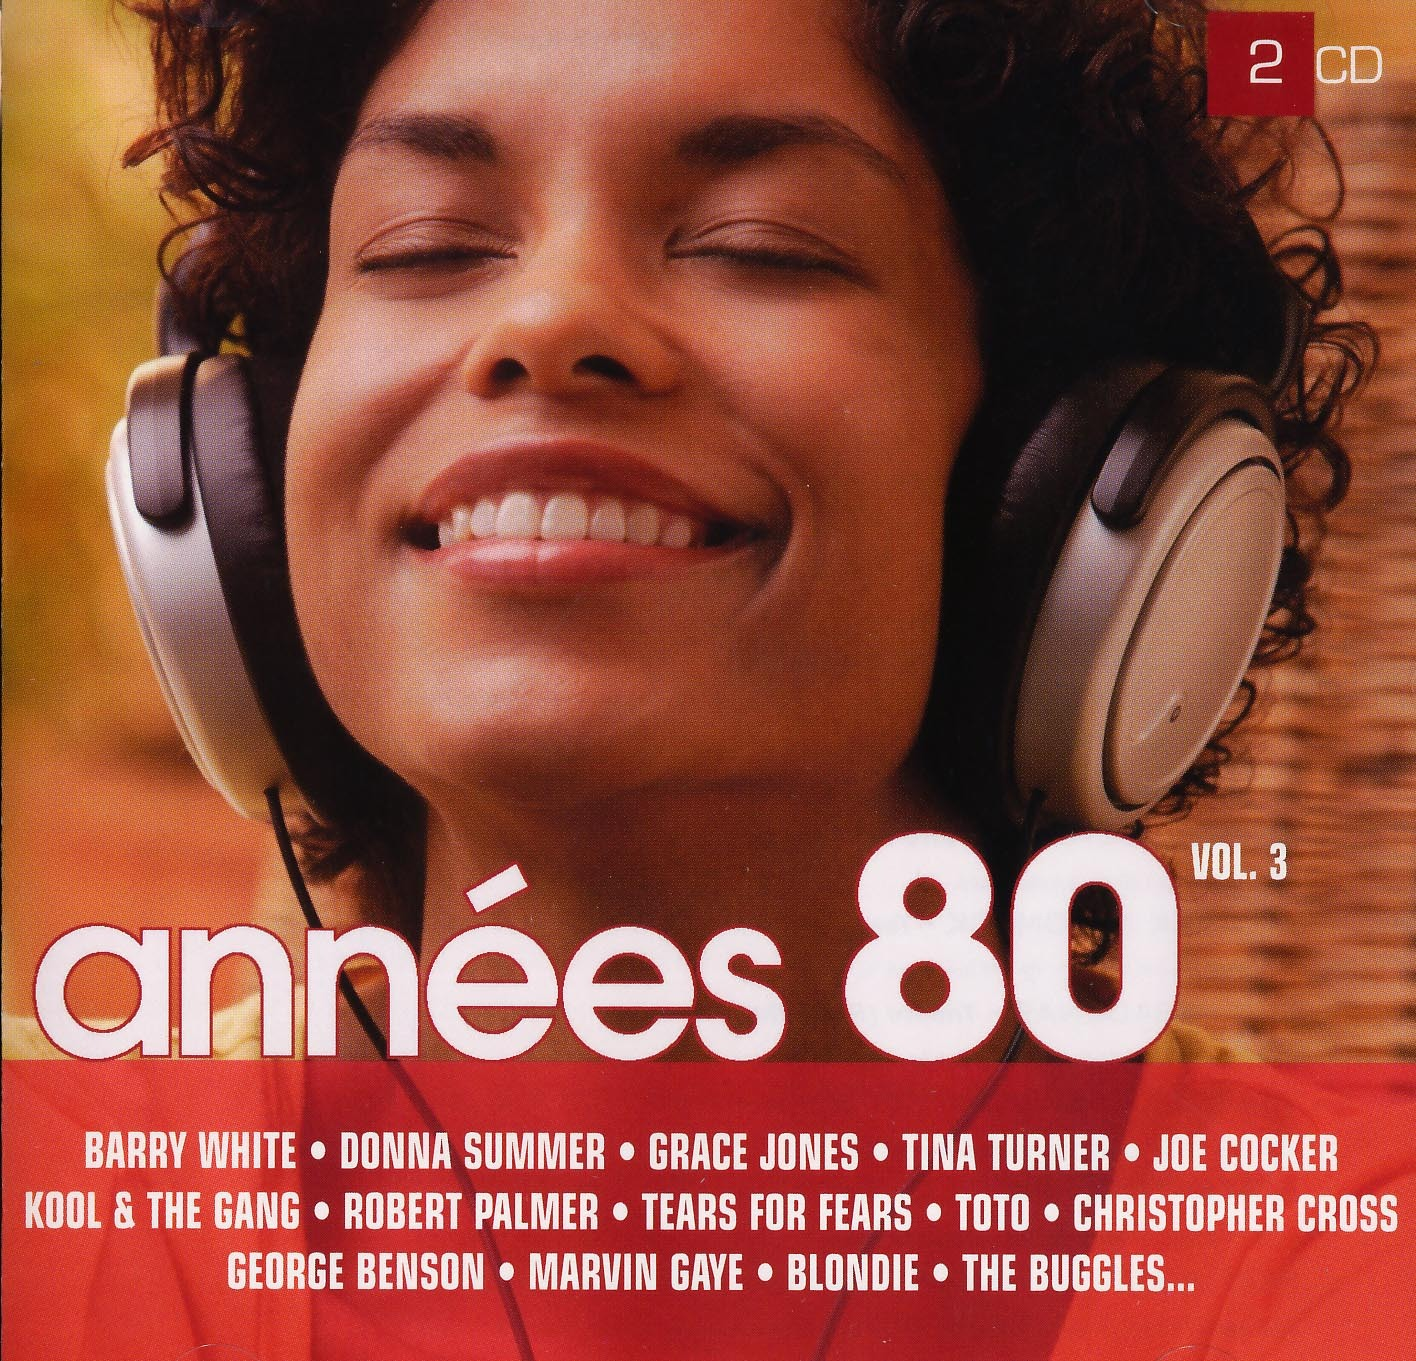 ANNEES 80 VOL3 - 2 CD-COLLECTION TWOGETHER